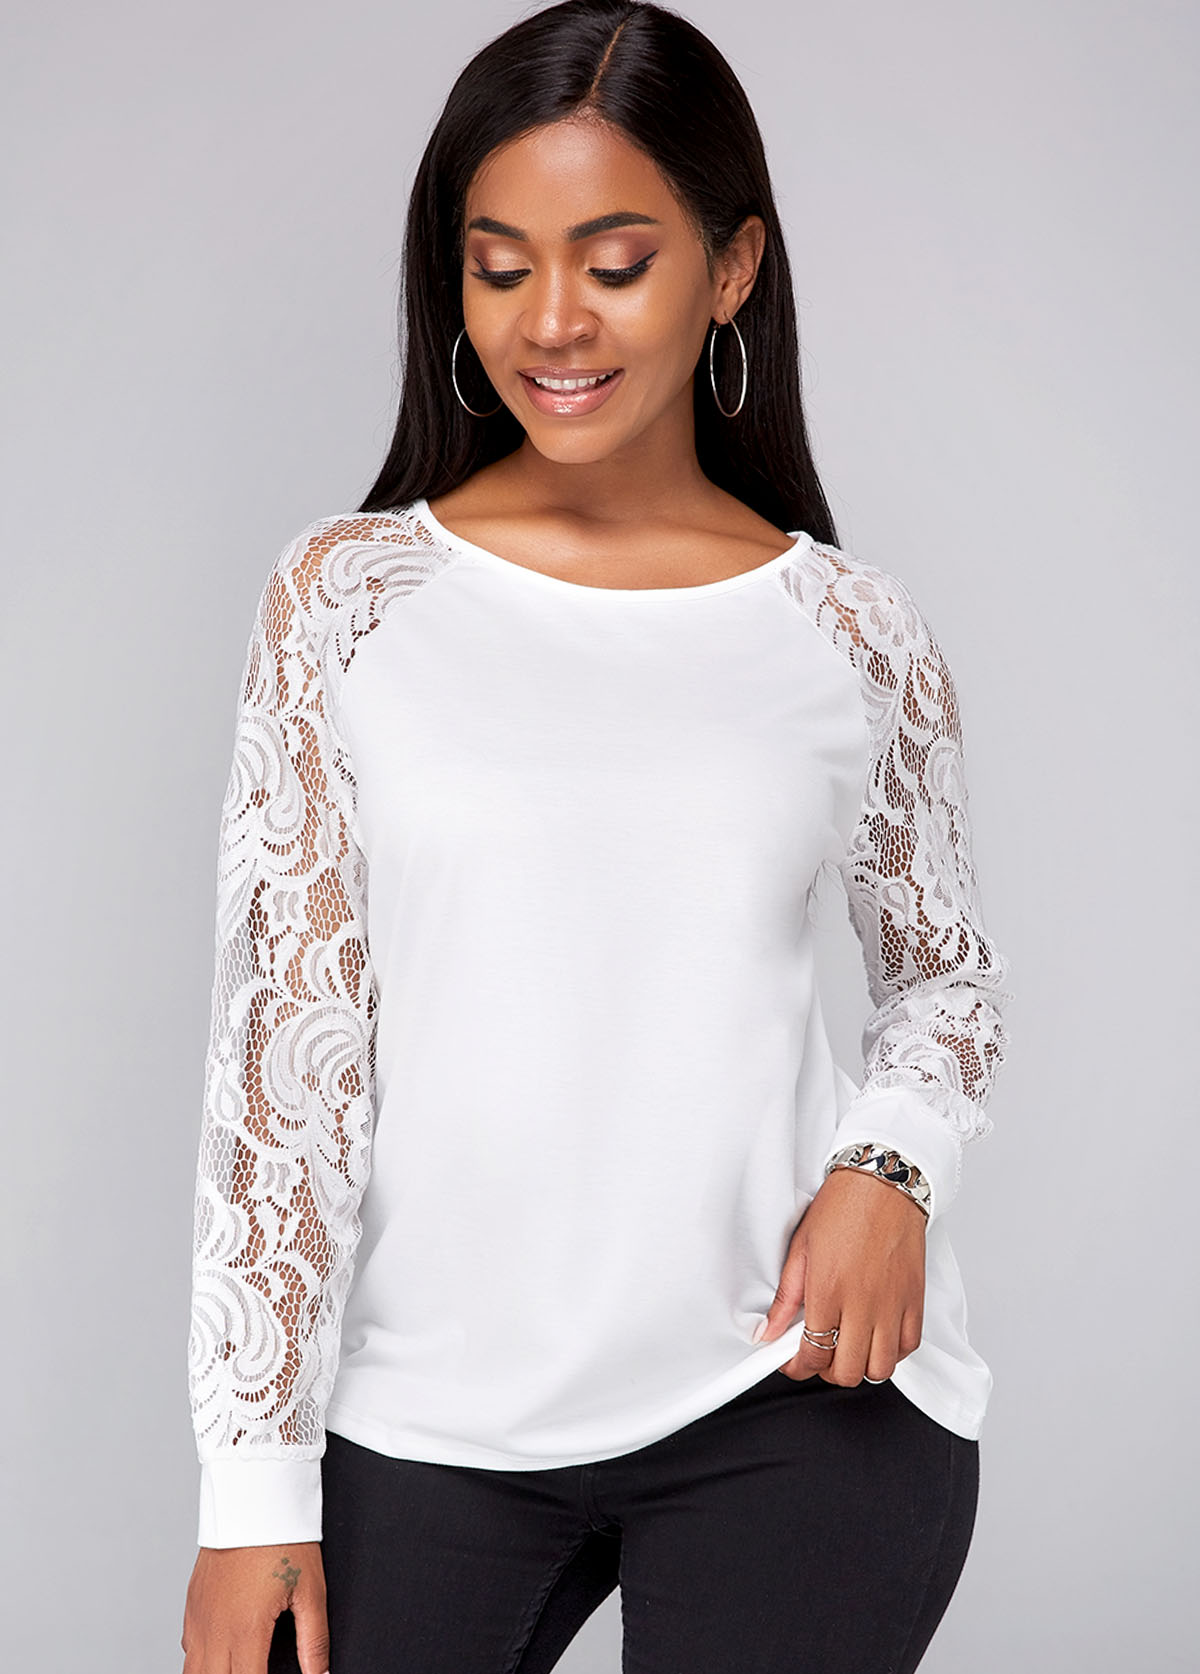 Lace Panel Long Sleeve Round Neck Sweatshirt